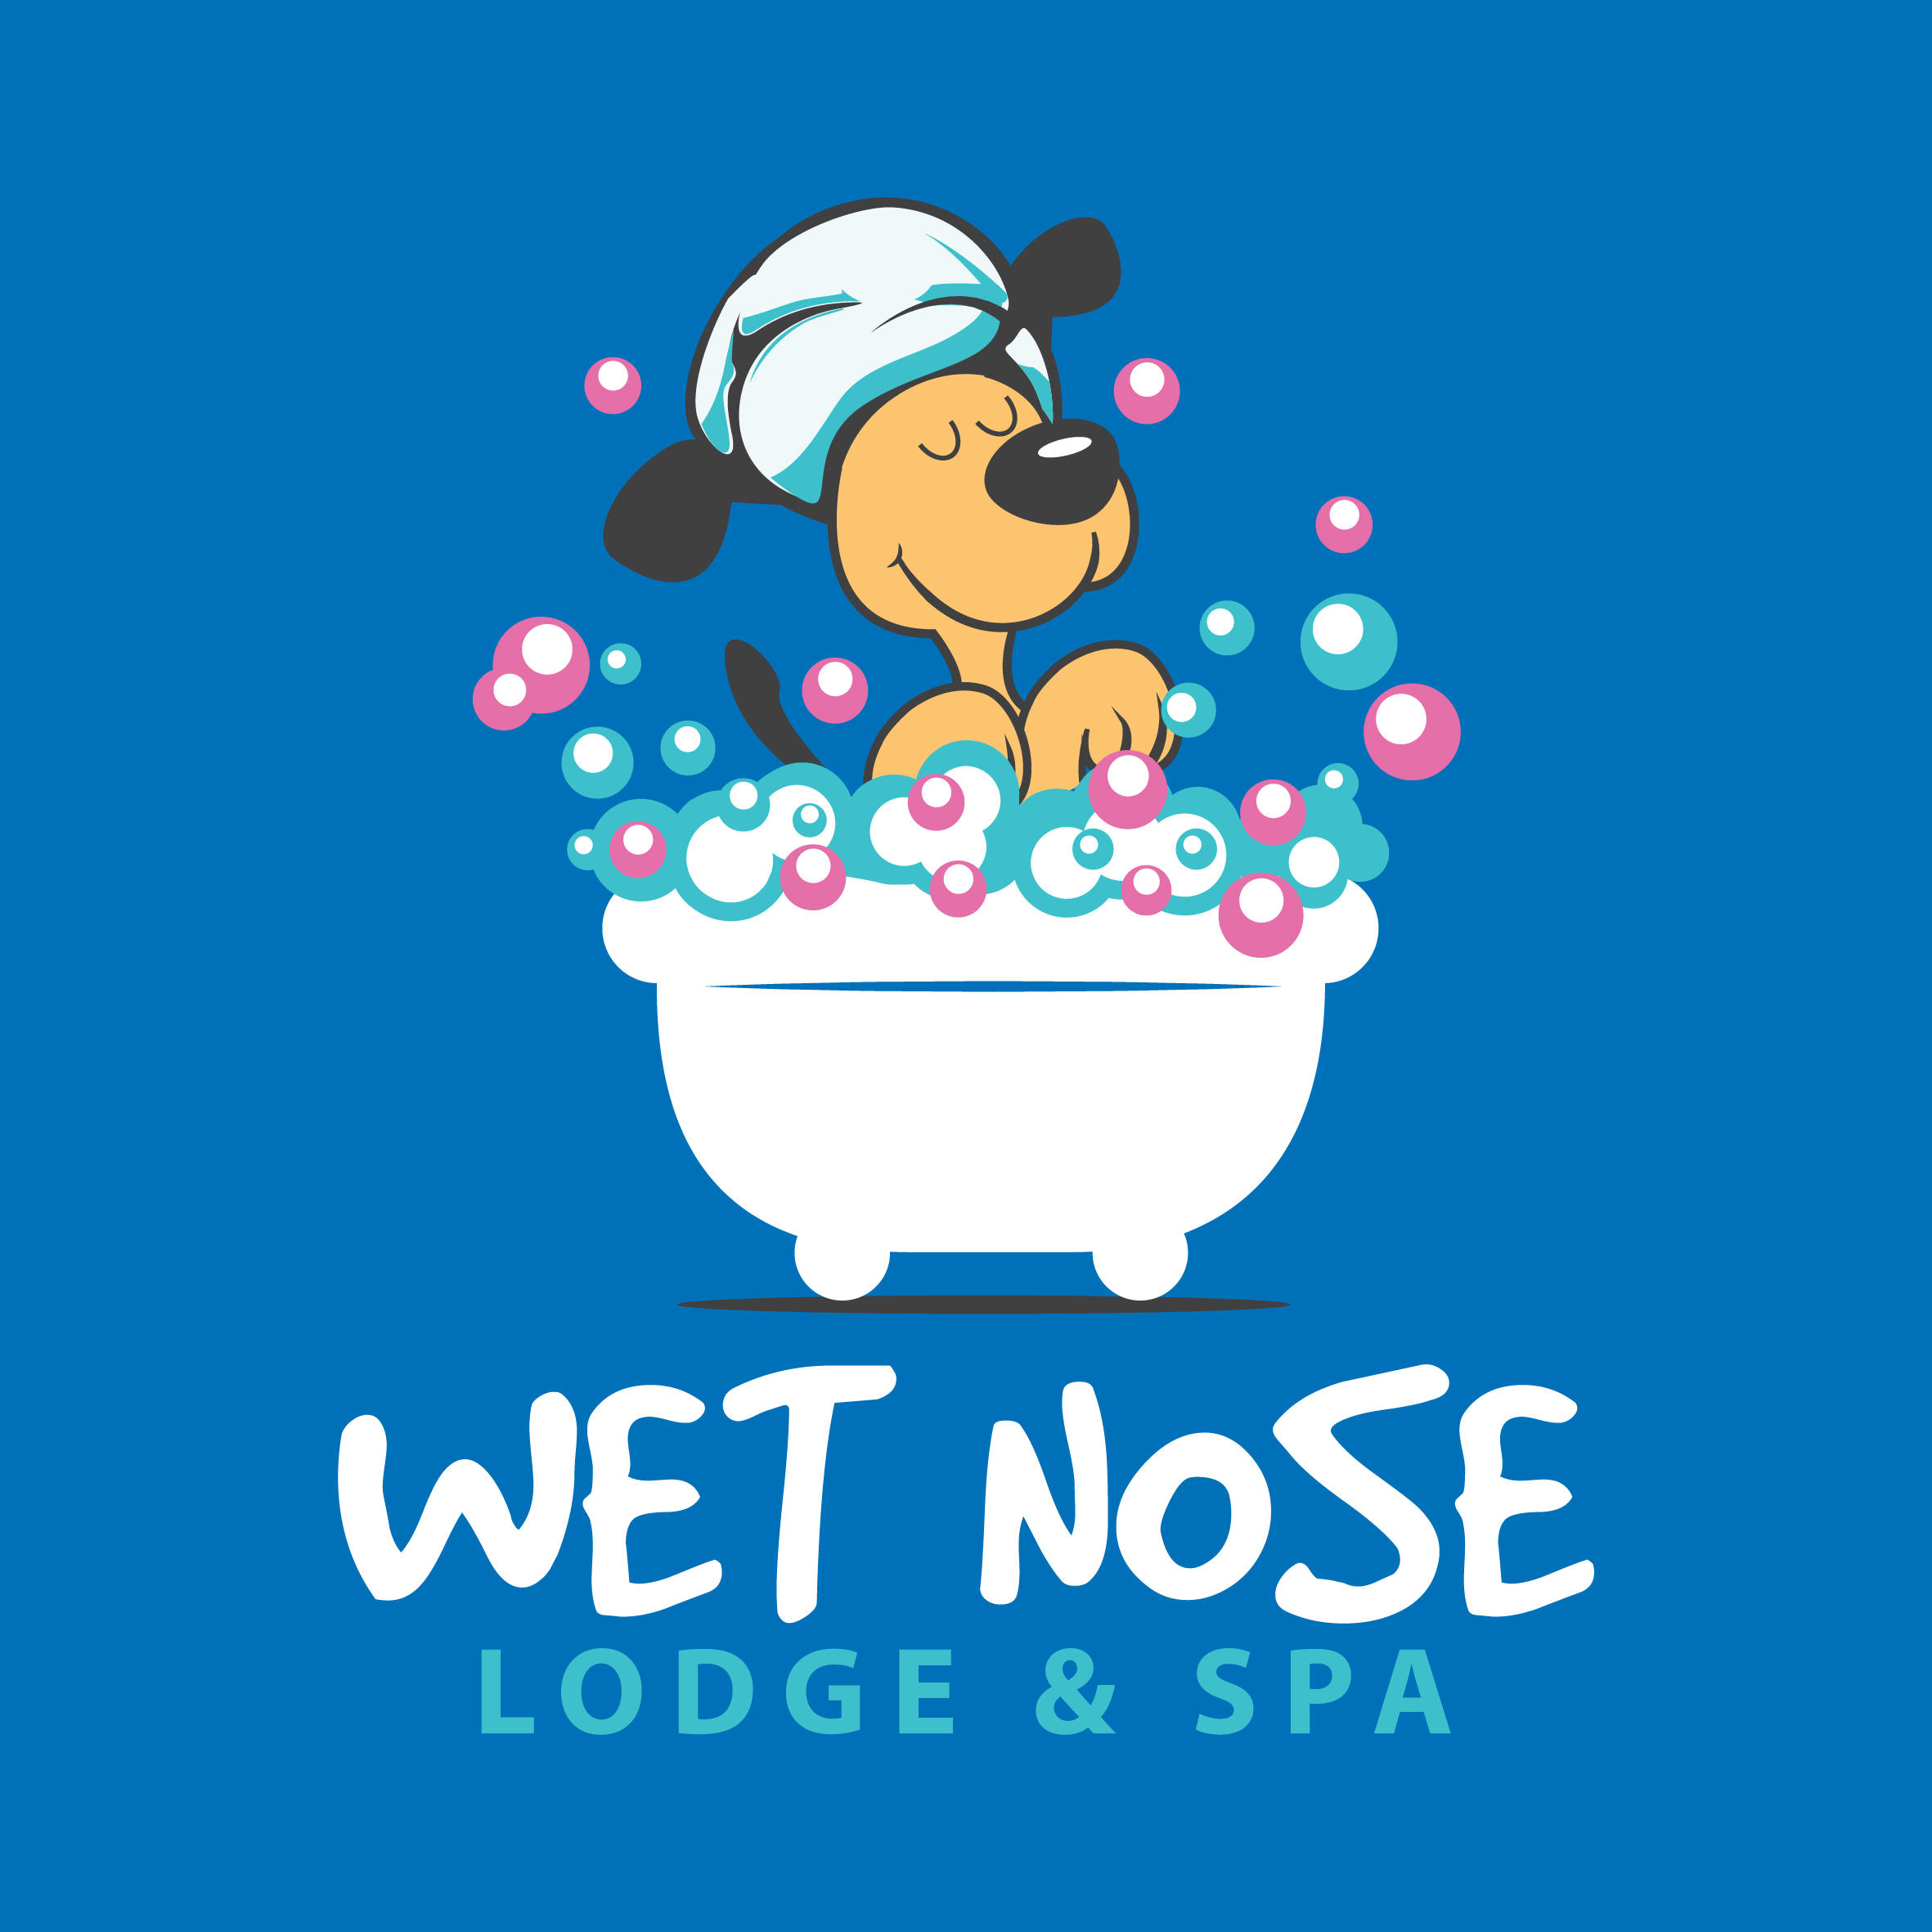 Wet Nose Lodge & Spa